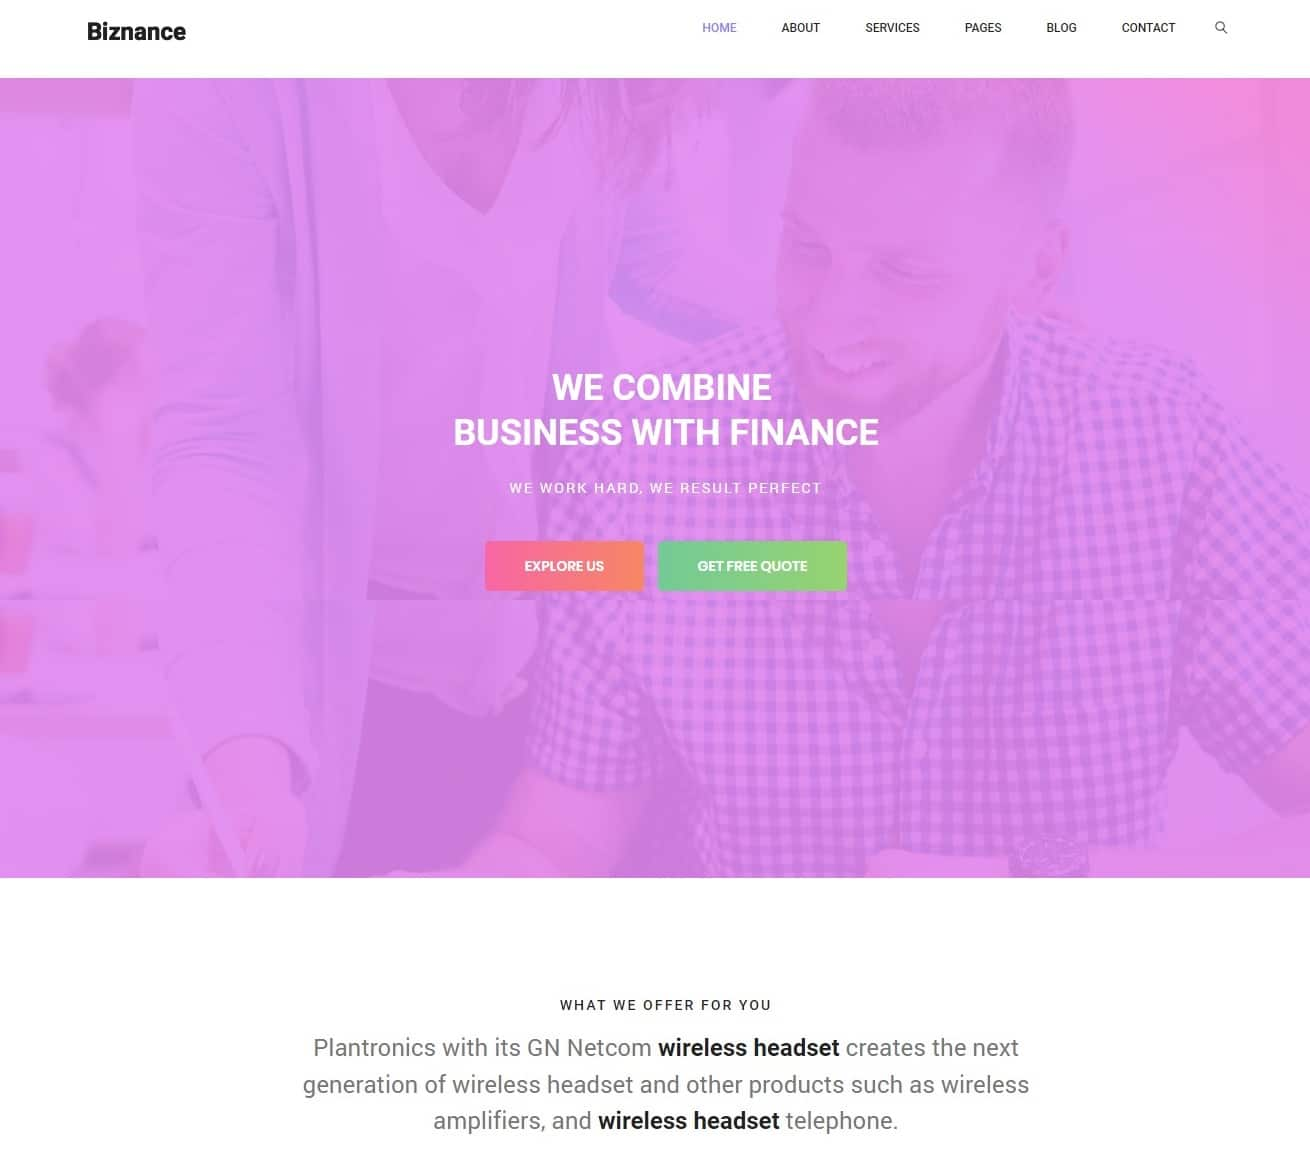 biznance transportation website template